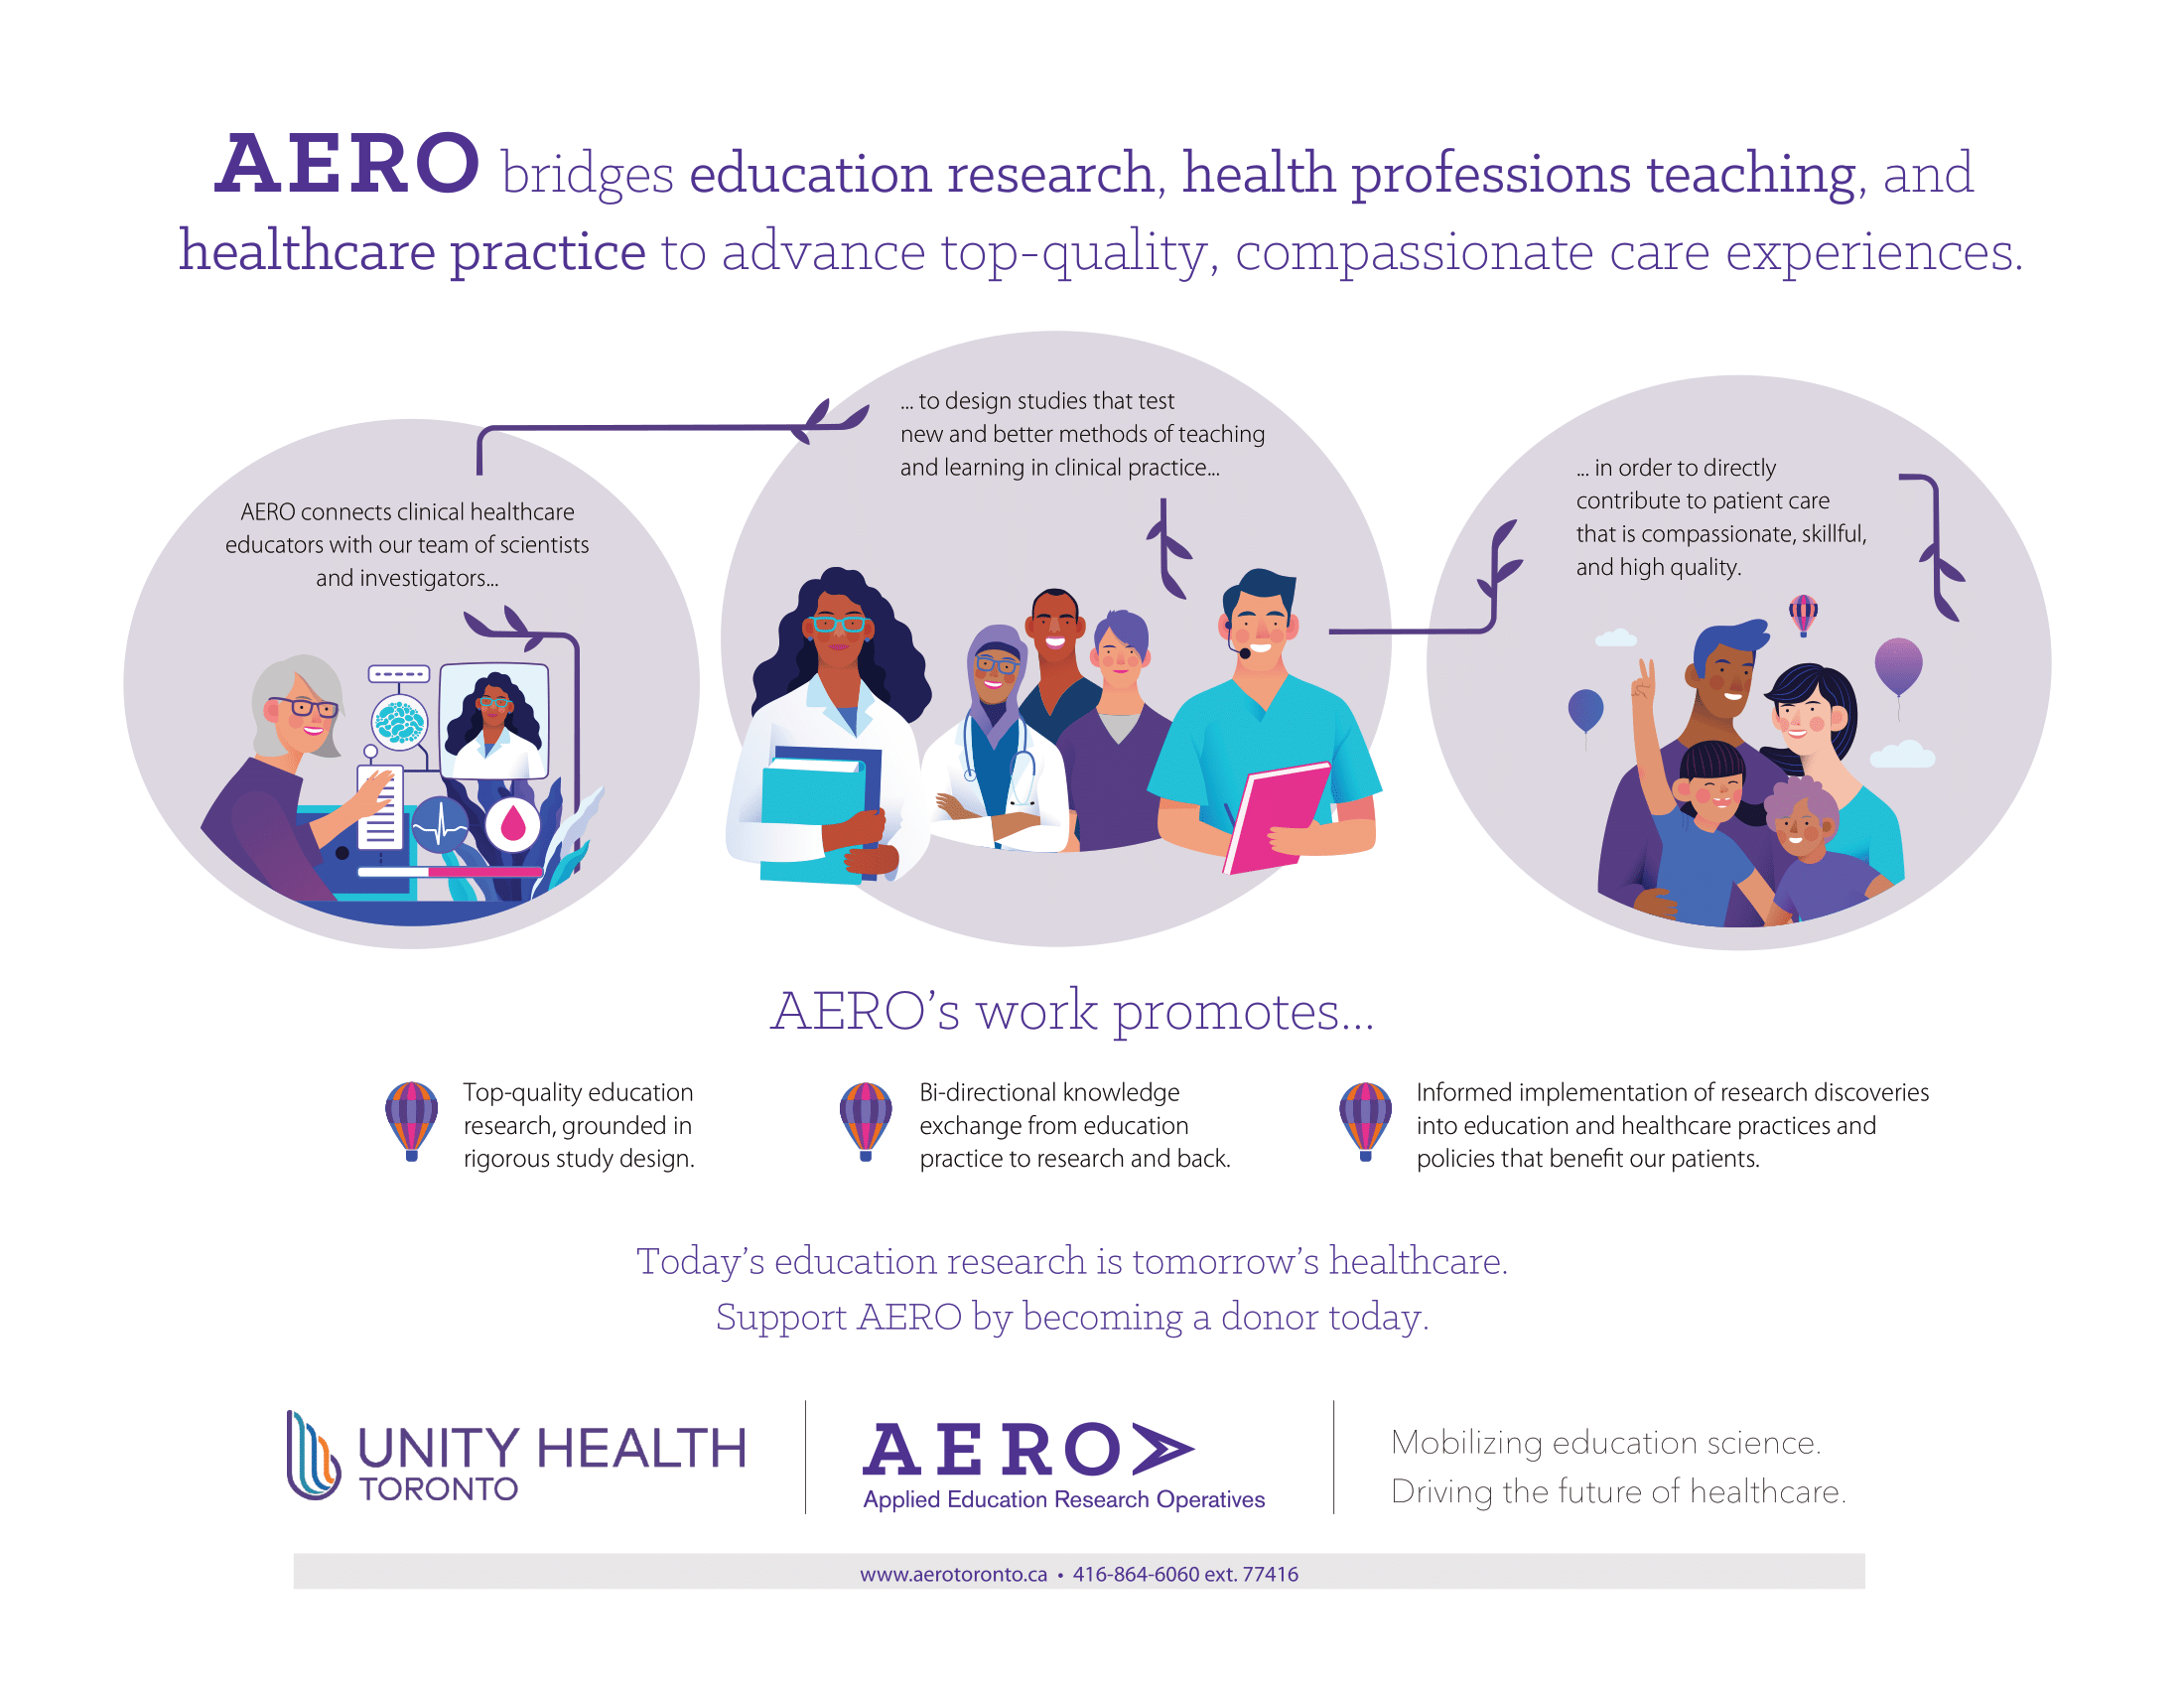 Support AERO by becoming a Donor